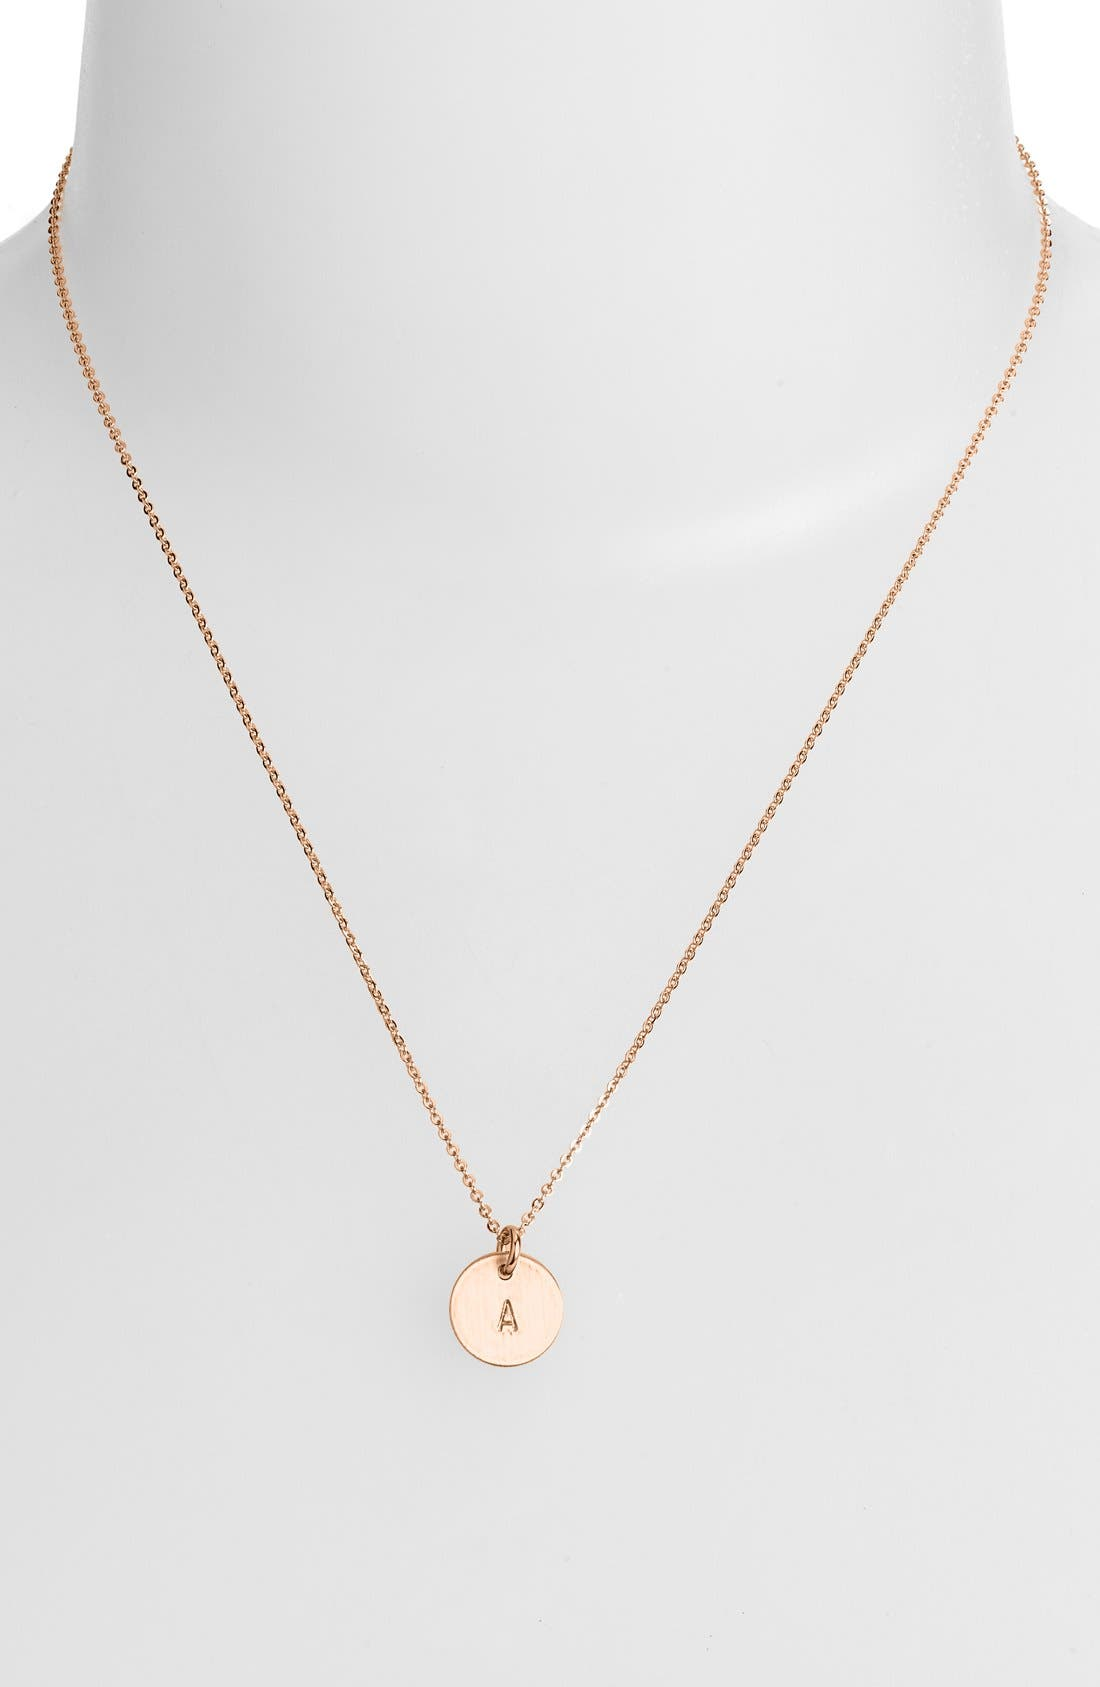 14k-Rose Gold Fill Initial Mini Disc Necklace,                             Alternate thumbnail 2, color,                             220